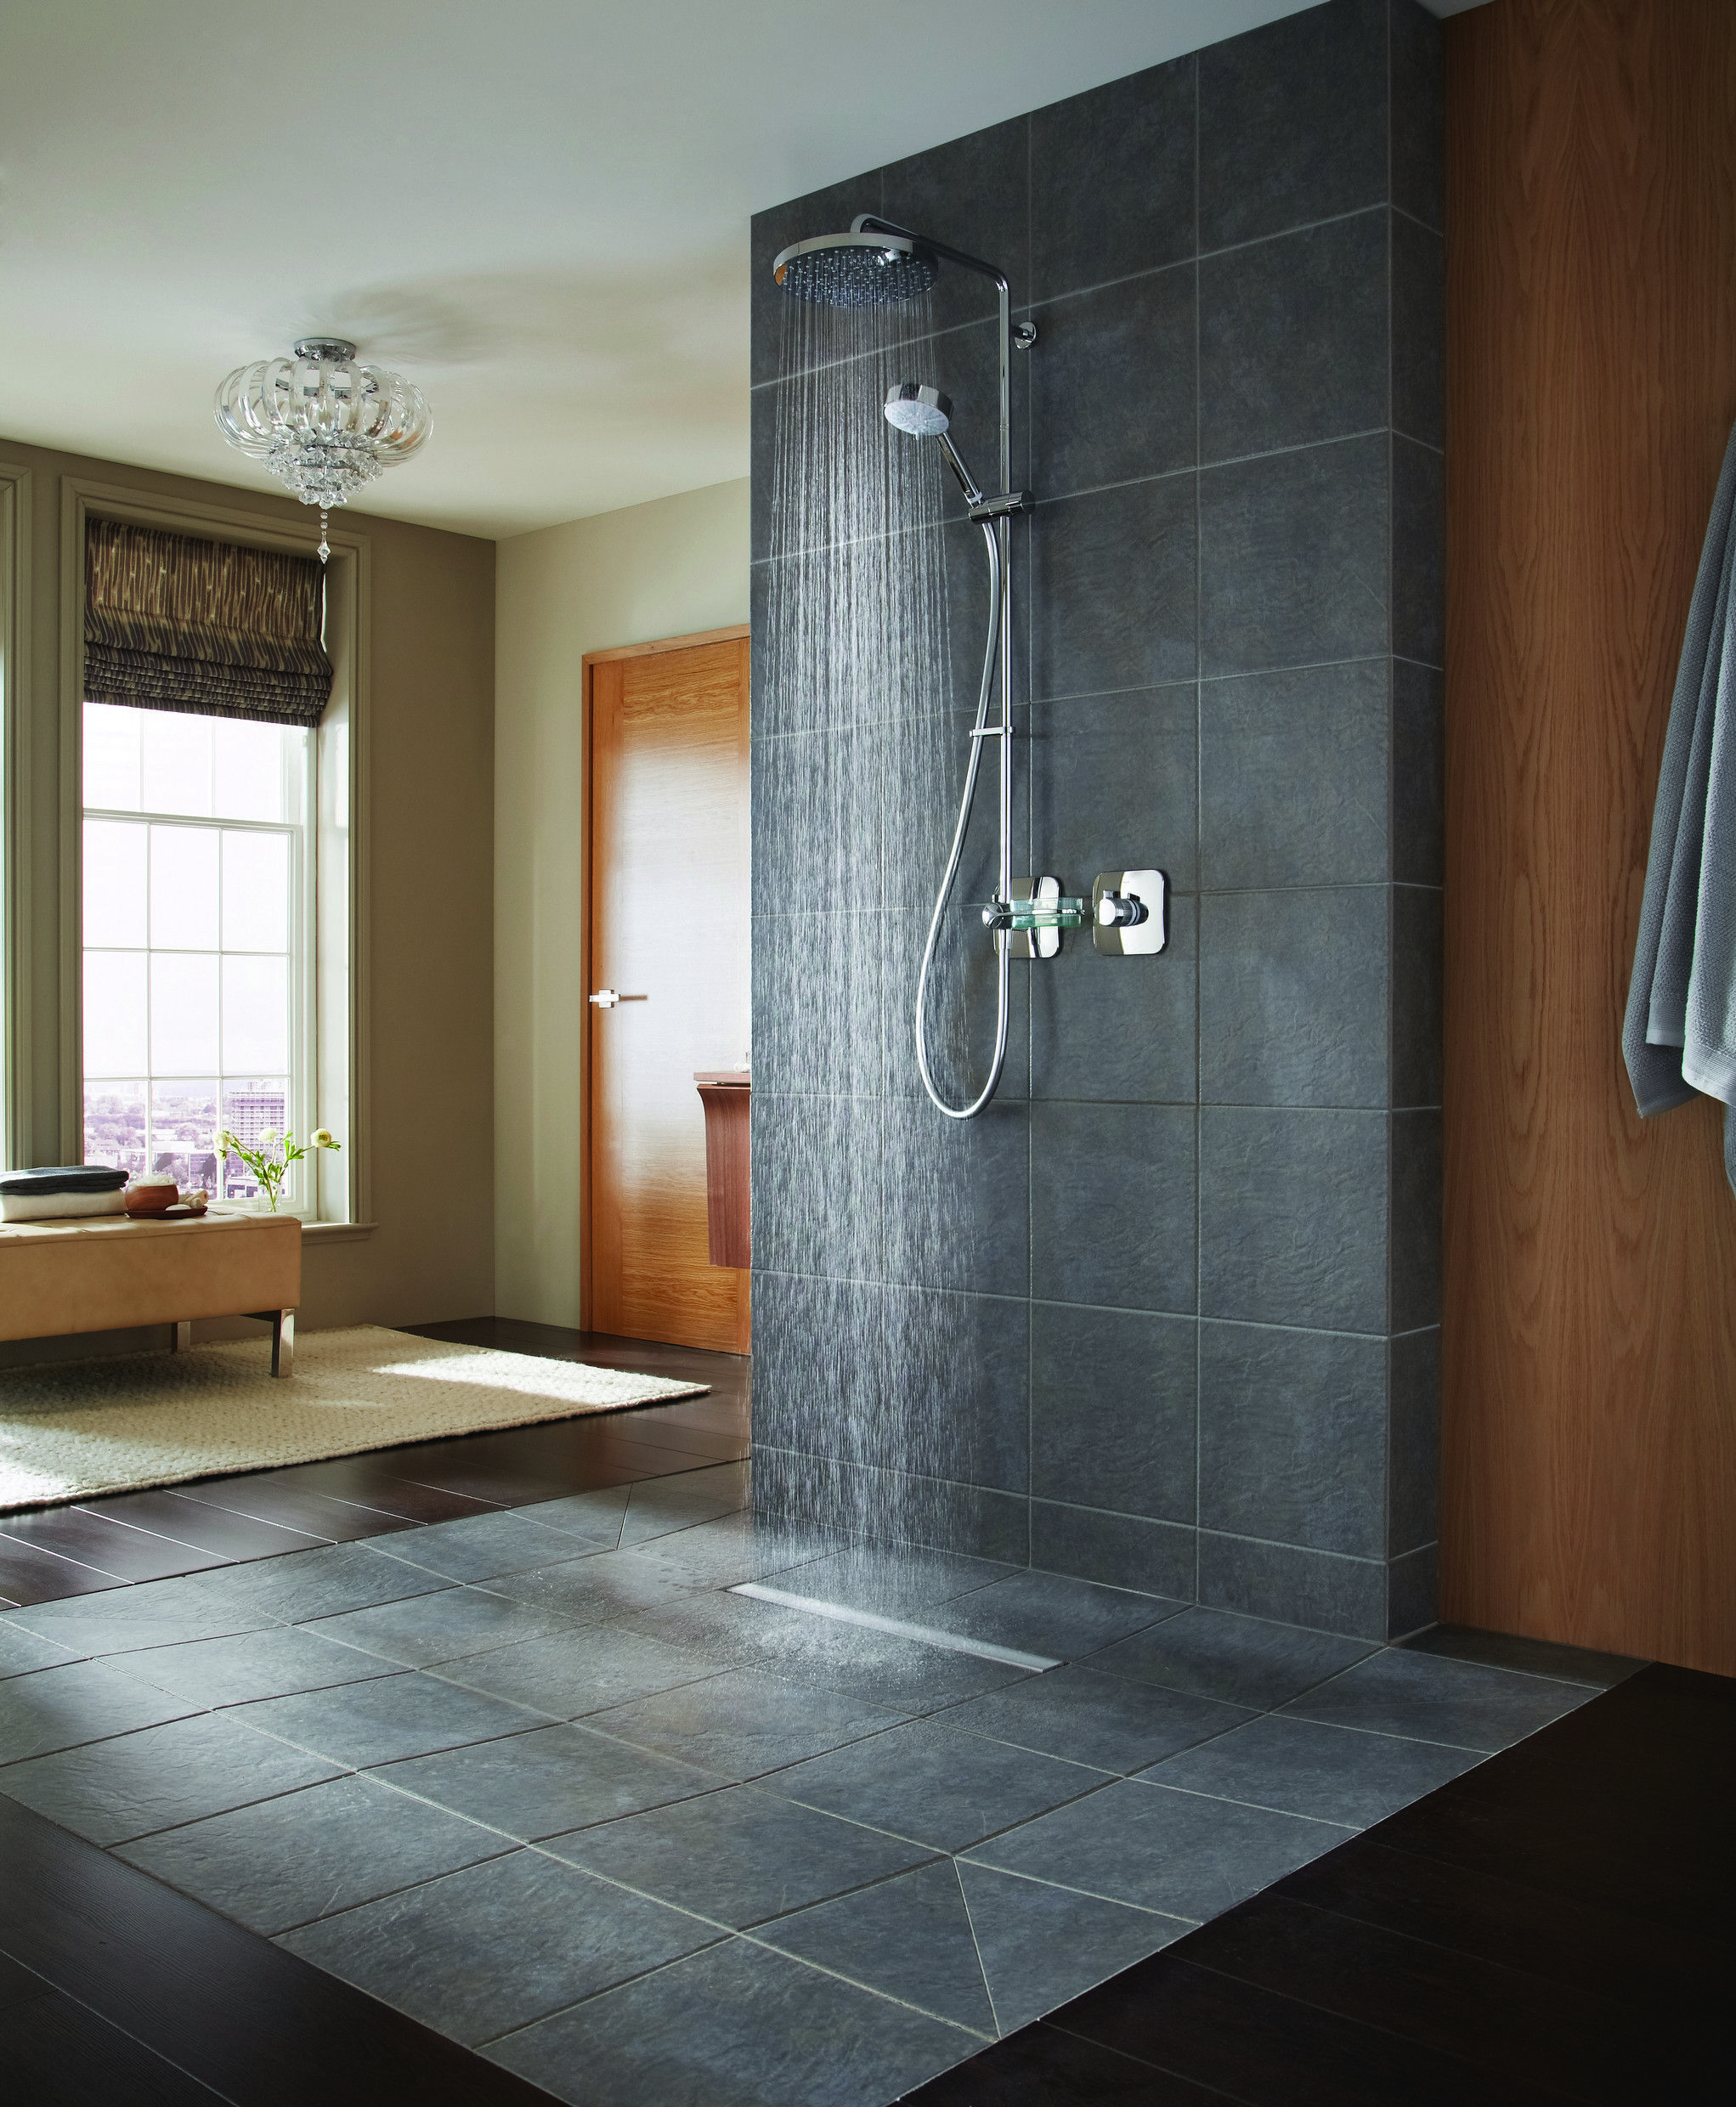 Mira Adept BRD (built in valve with Rigid riser) Thermostatic Mixer ...